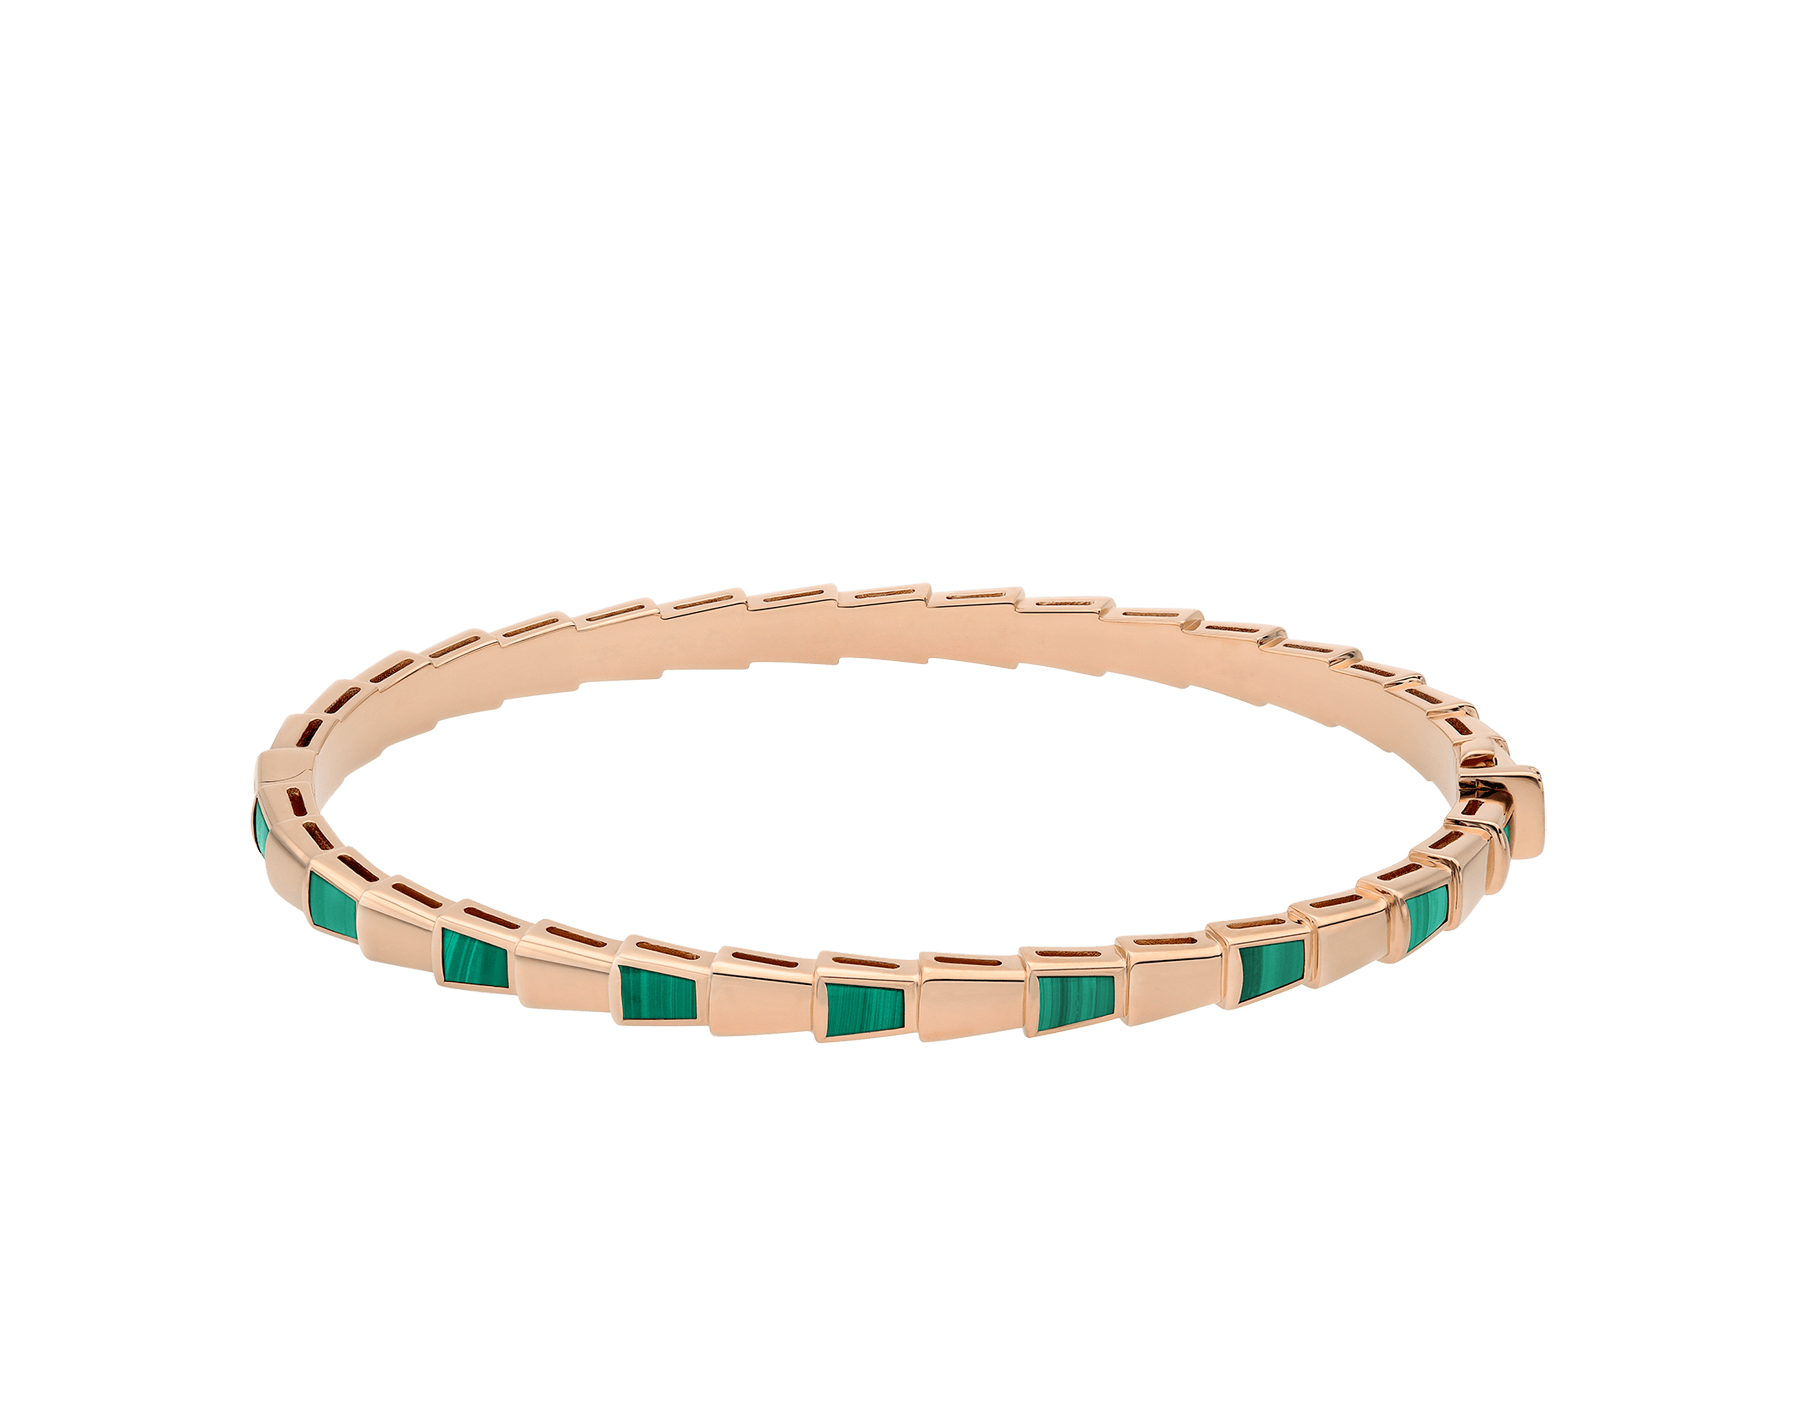 Serpenti 18 kt rose gold thin bangle bracelet set with malachite elements BR858709 image 2